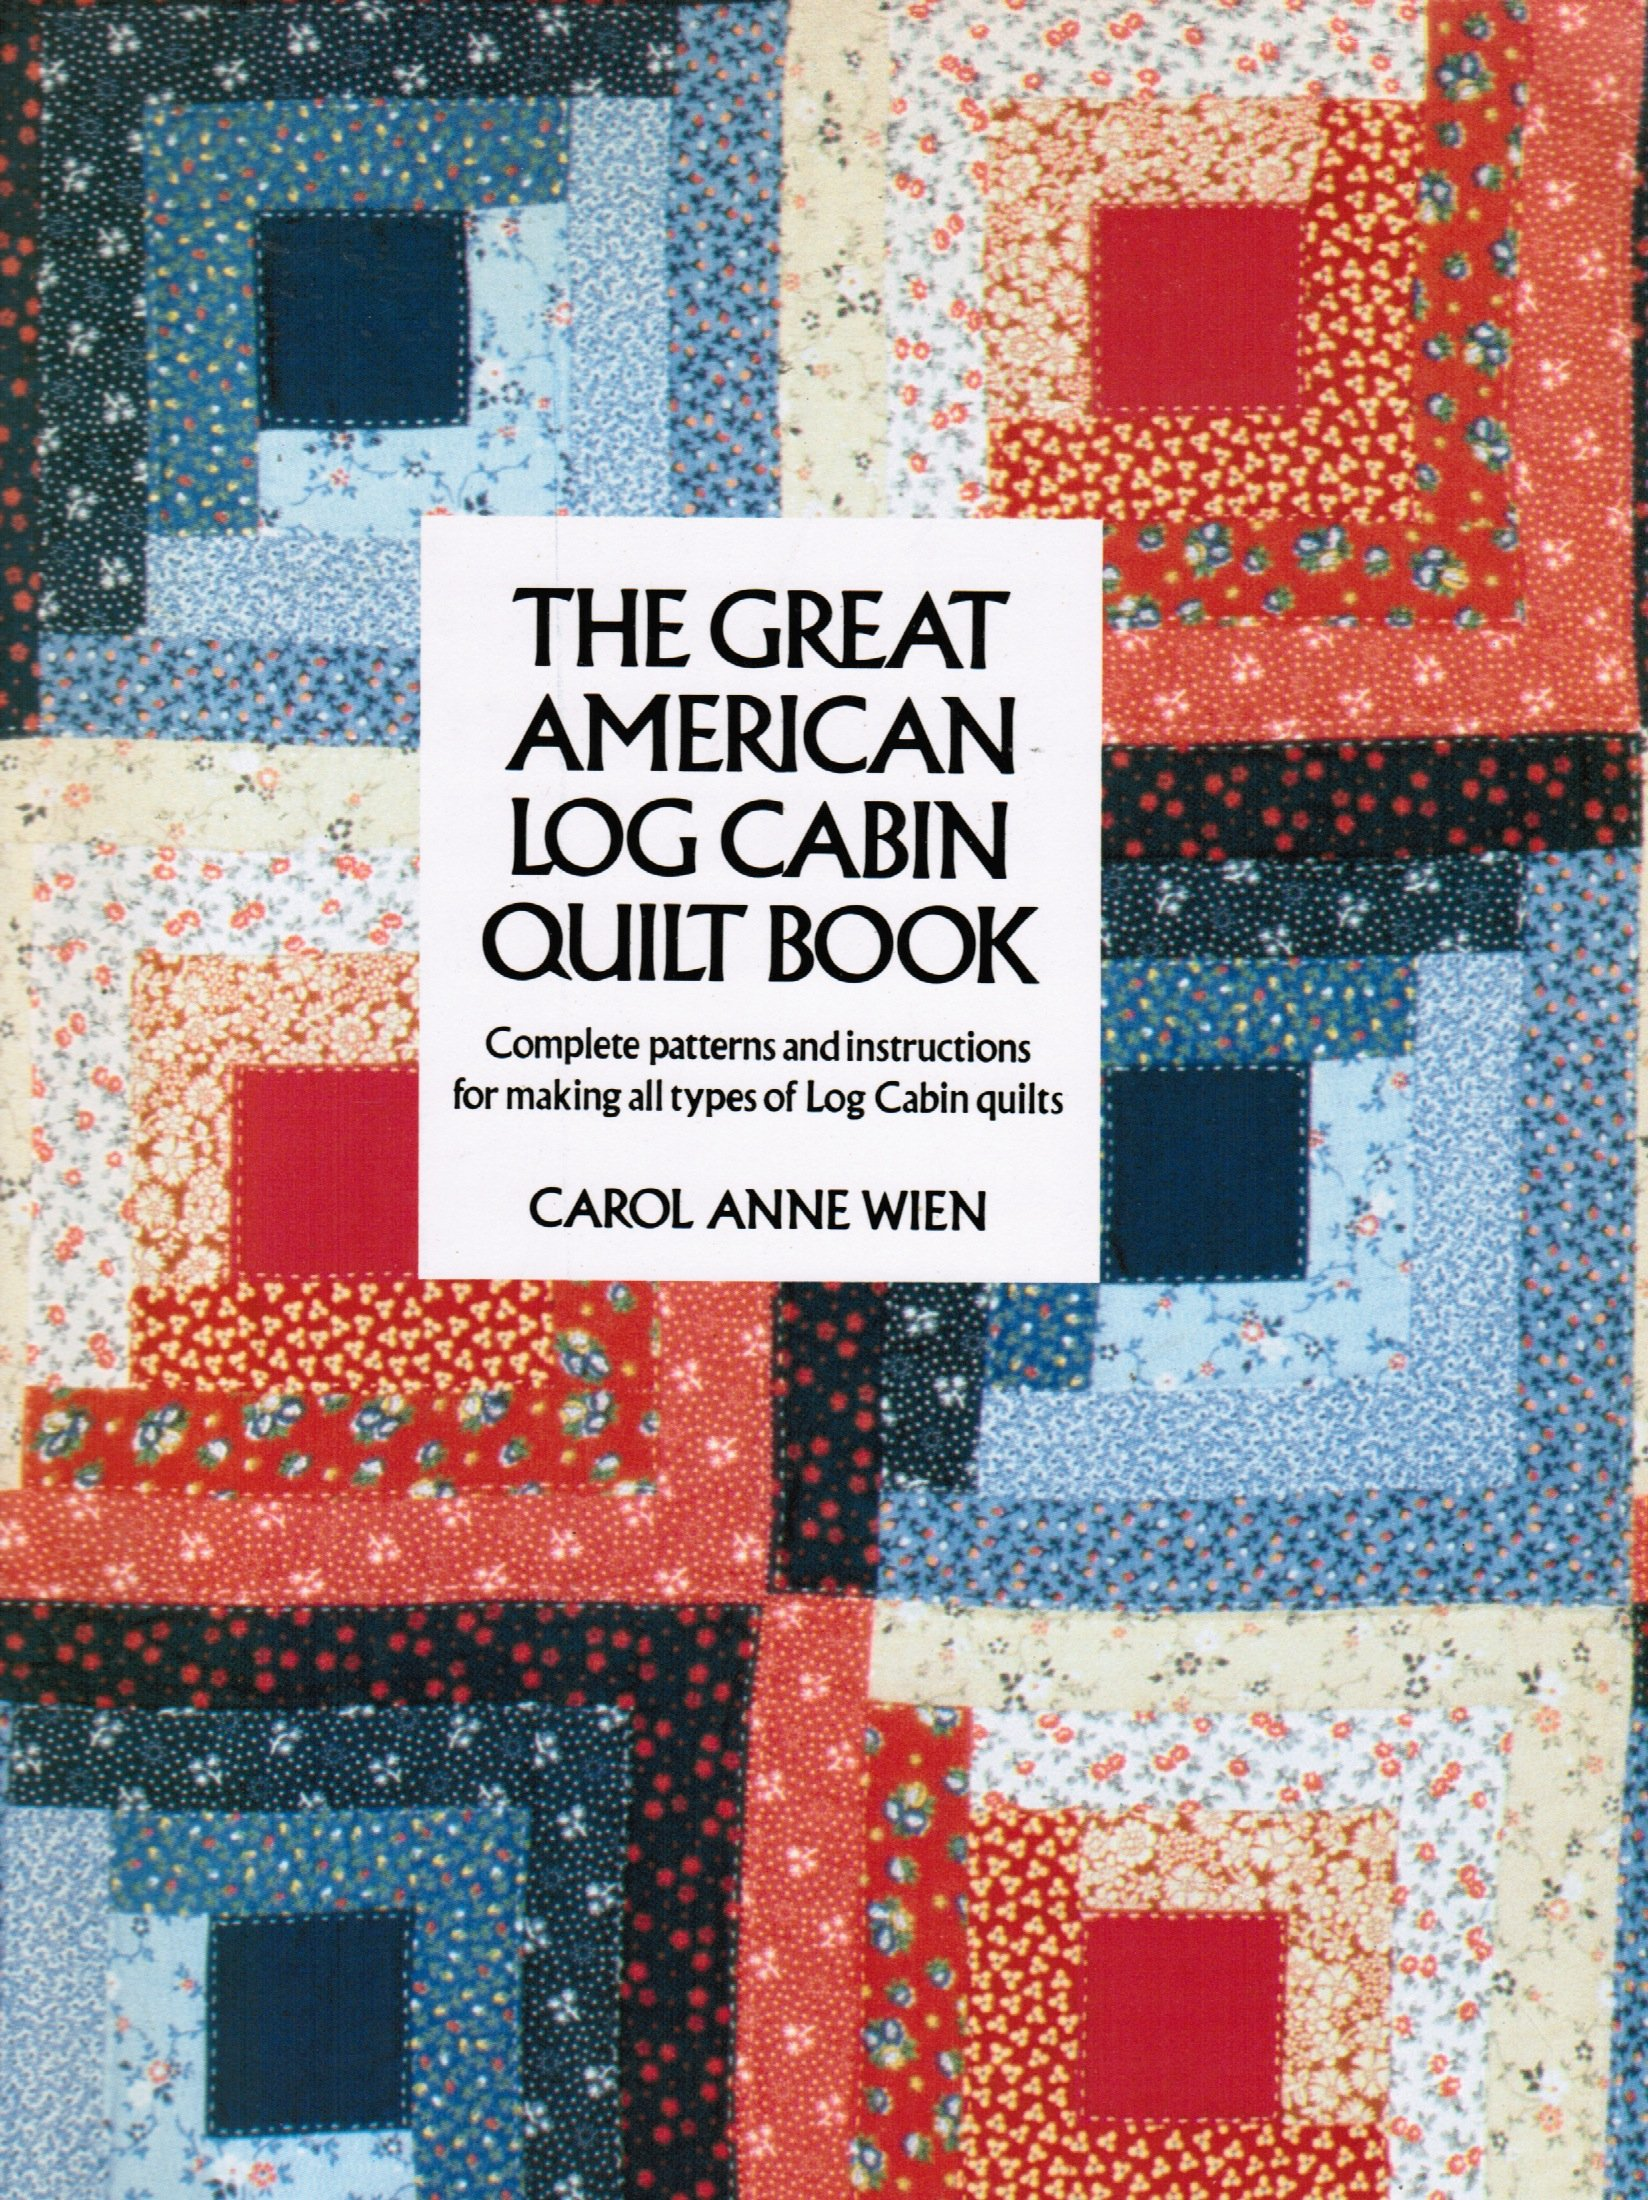 The Great American Log Cabin Quilt Book: Complete Patterns